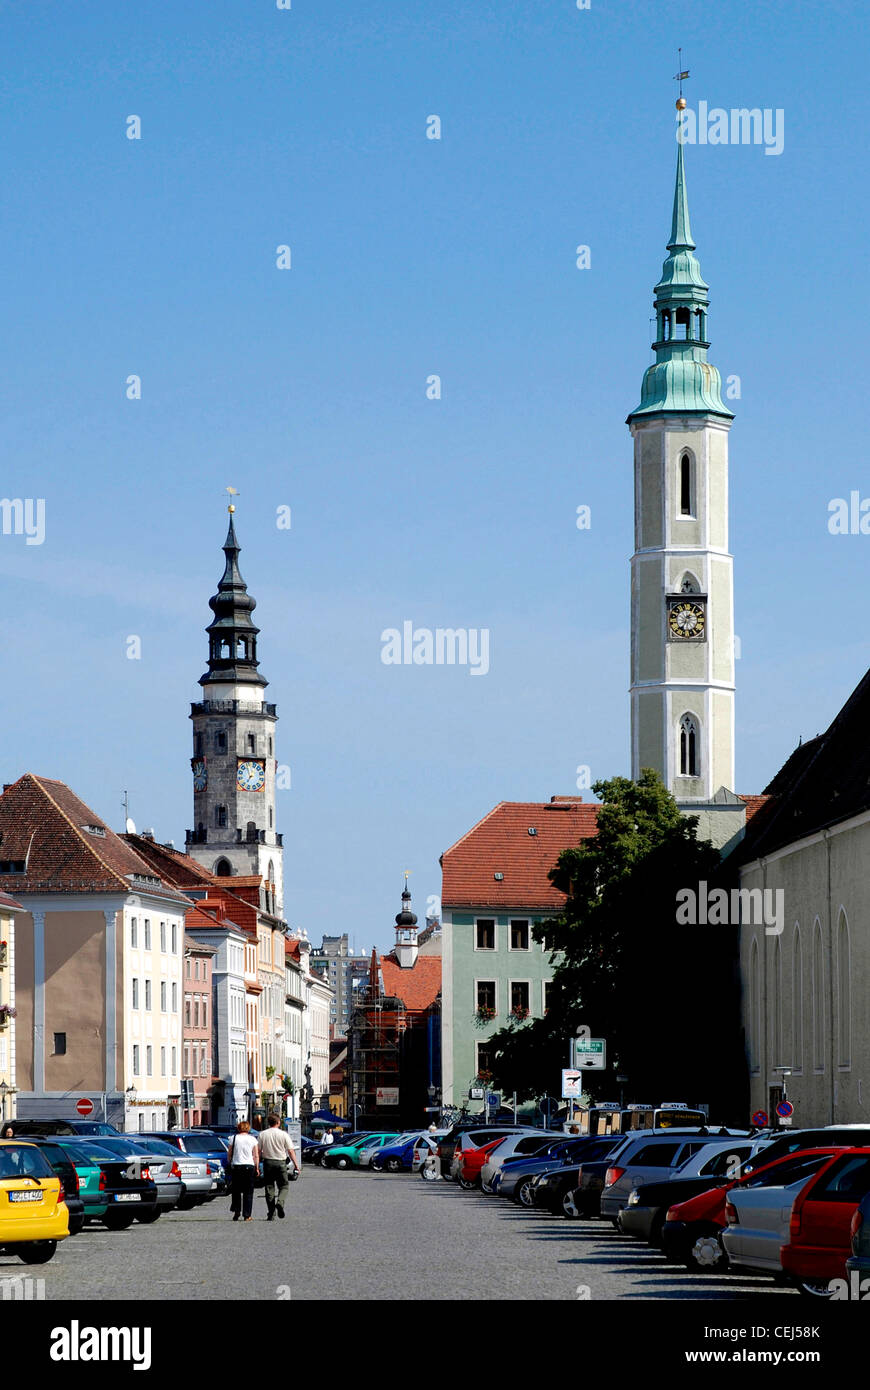 Square Obermarkt and the towers of church Saint Trinity and the city hall of Goerlitz. - Stock Image